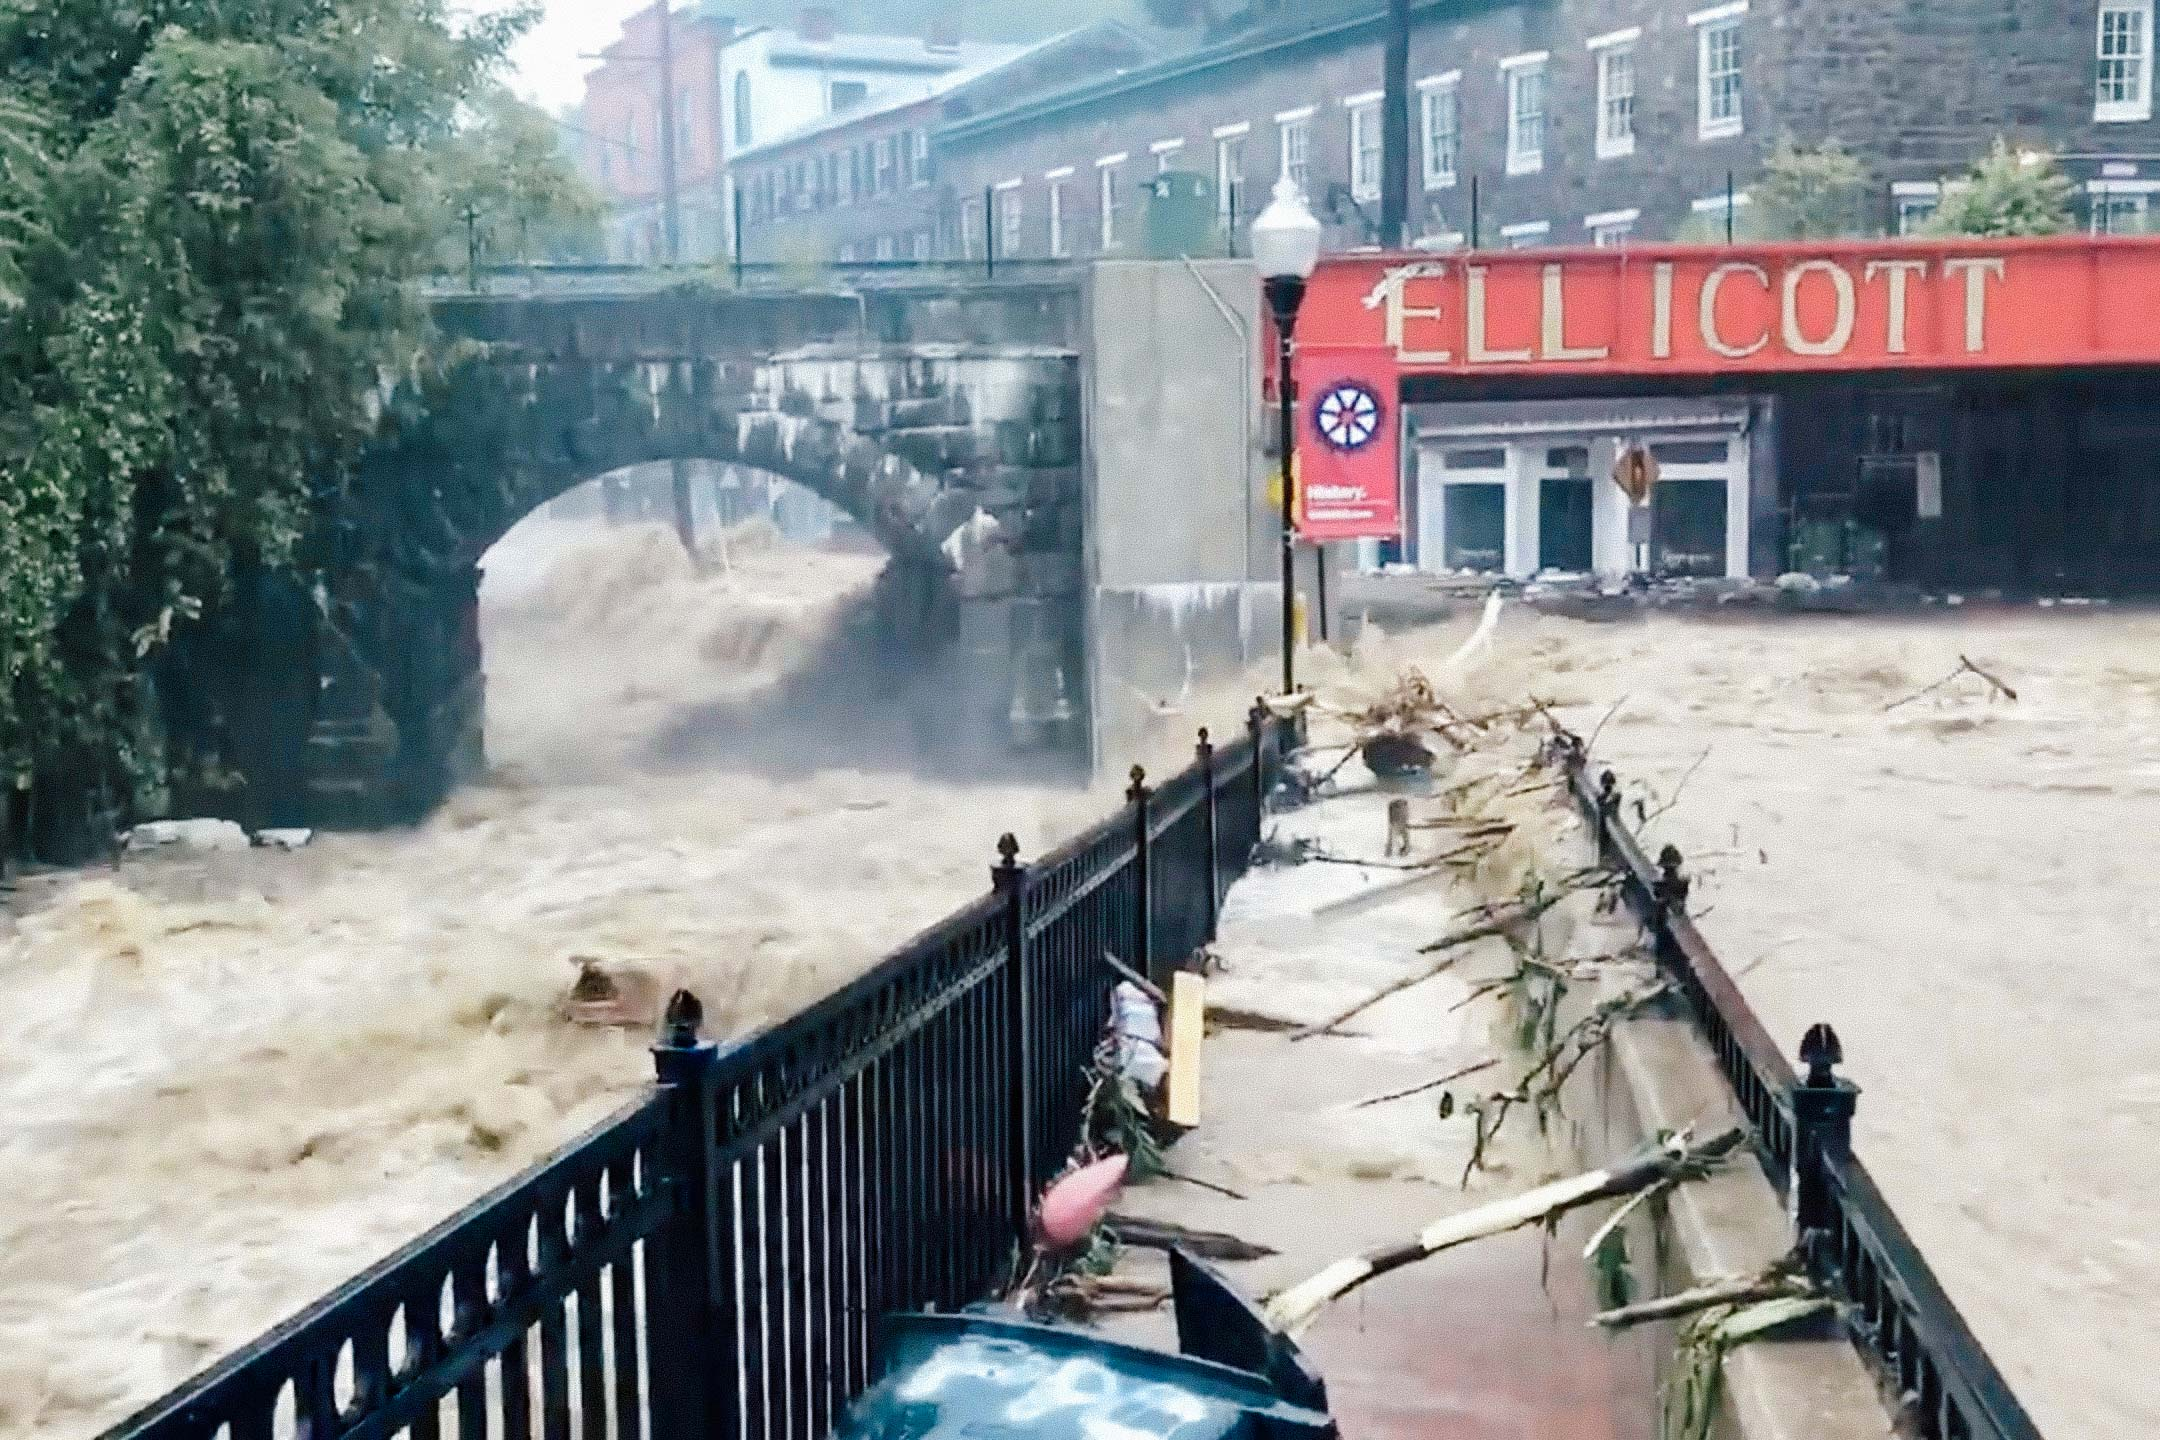 Flooding is seen in Ellicott City, Maryland, on Sunday in this still image from video from social media.